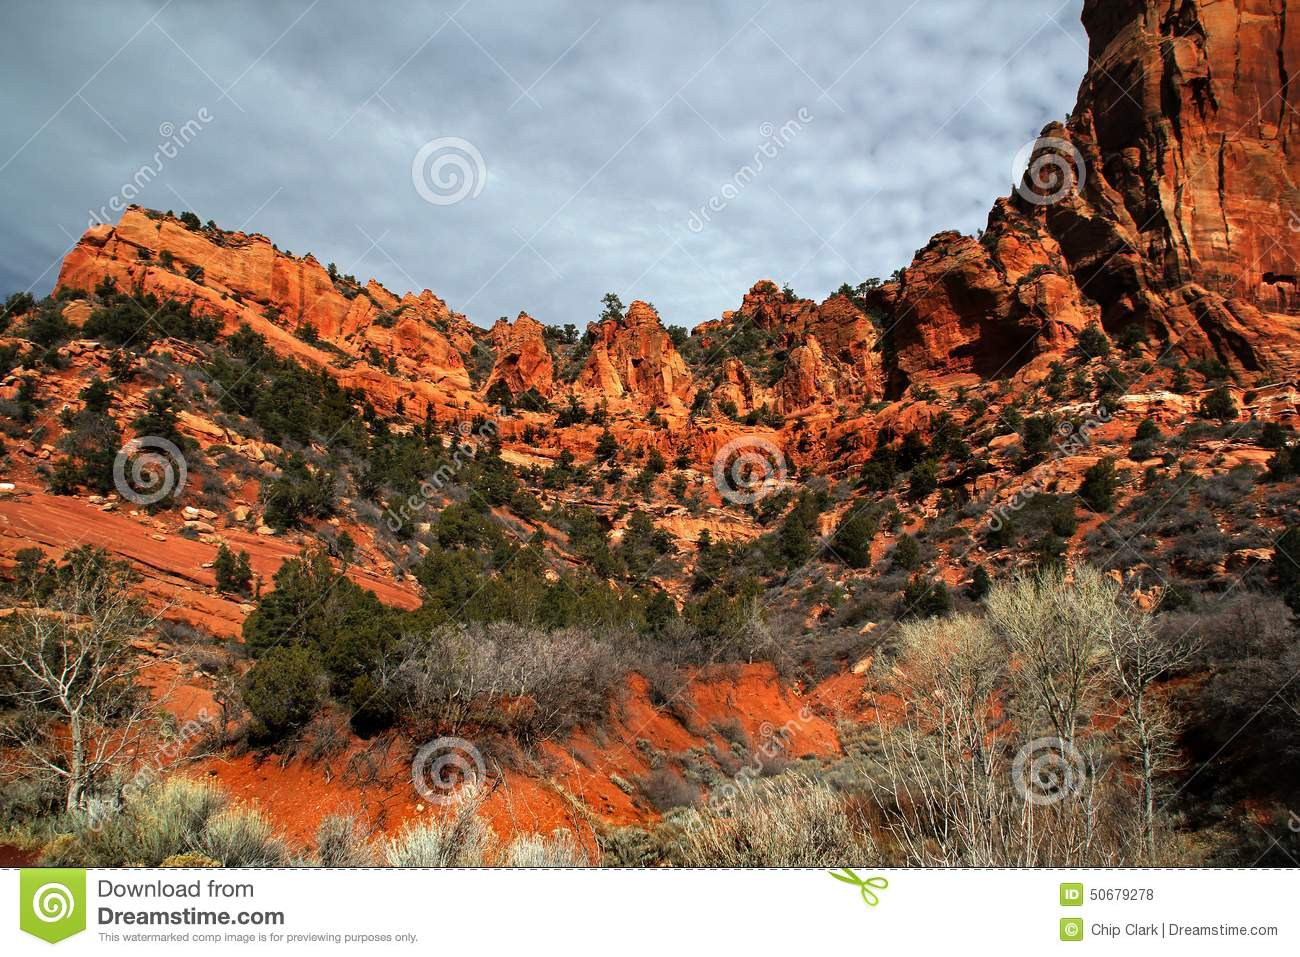 Zion National Park Royalty Free Stock Photography 57681635